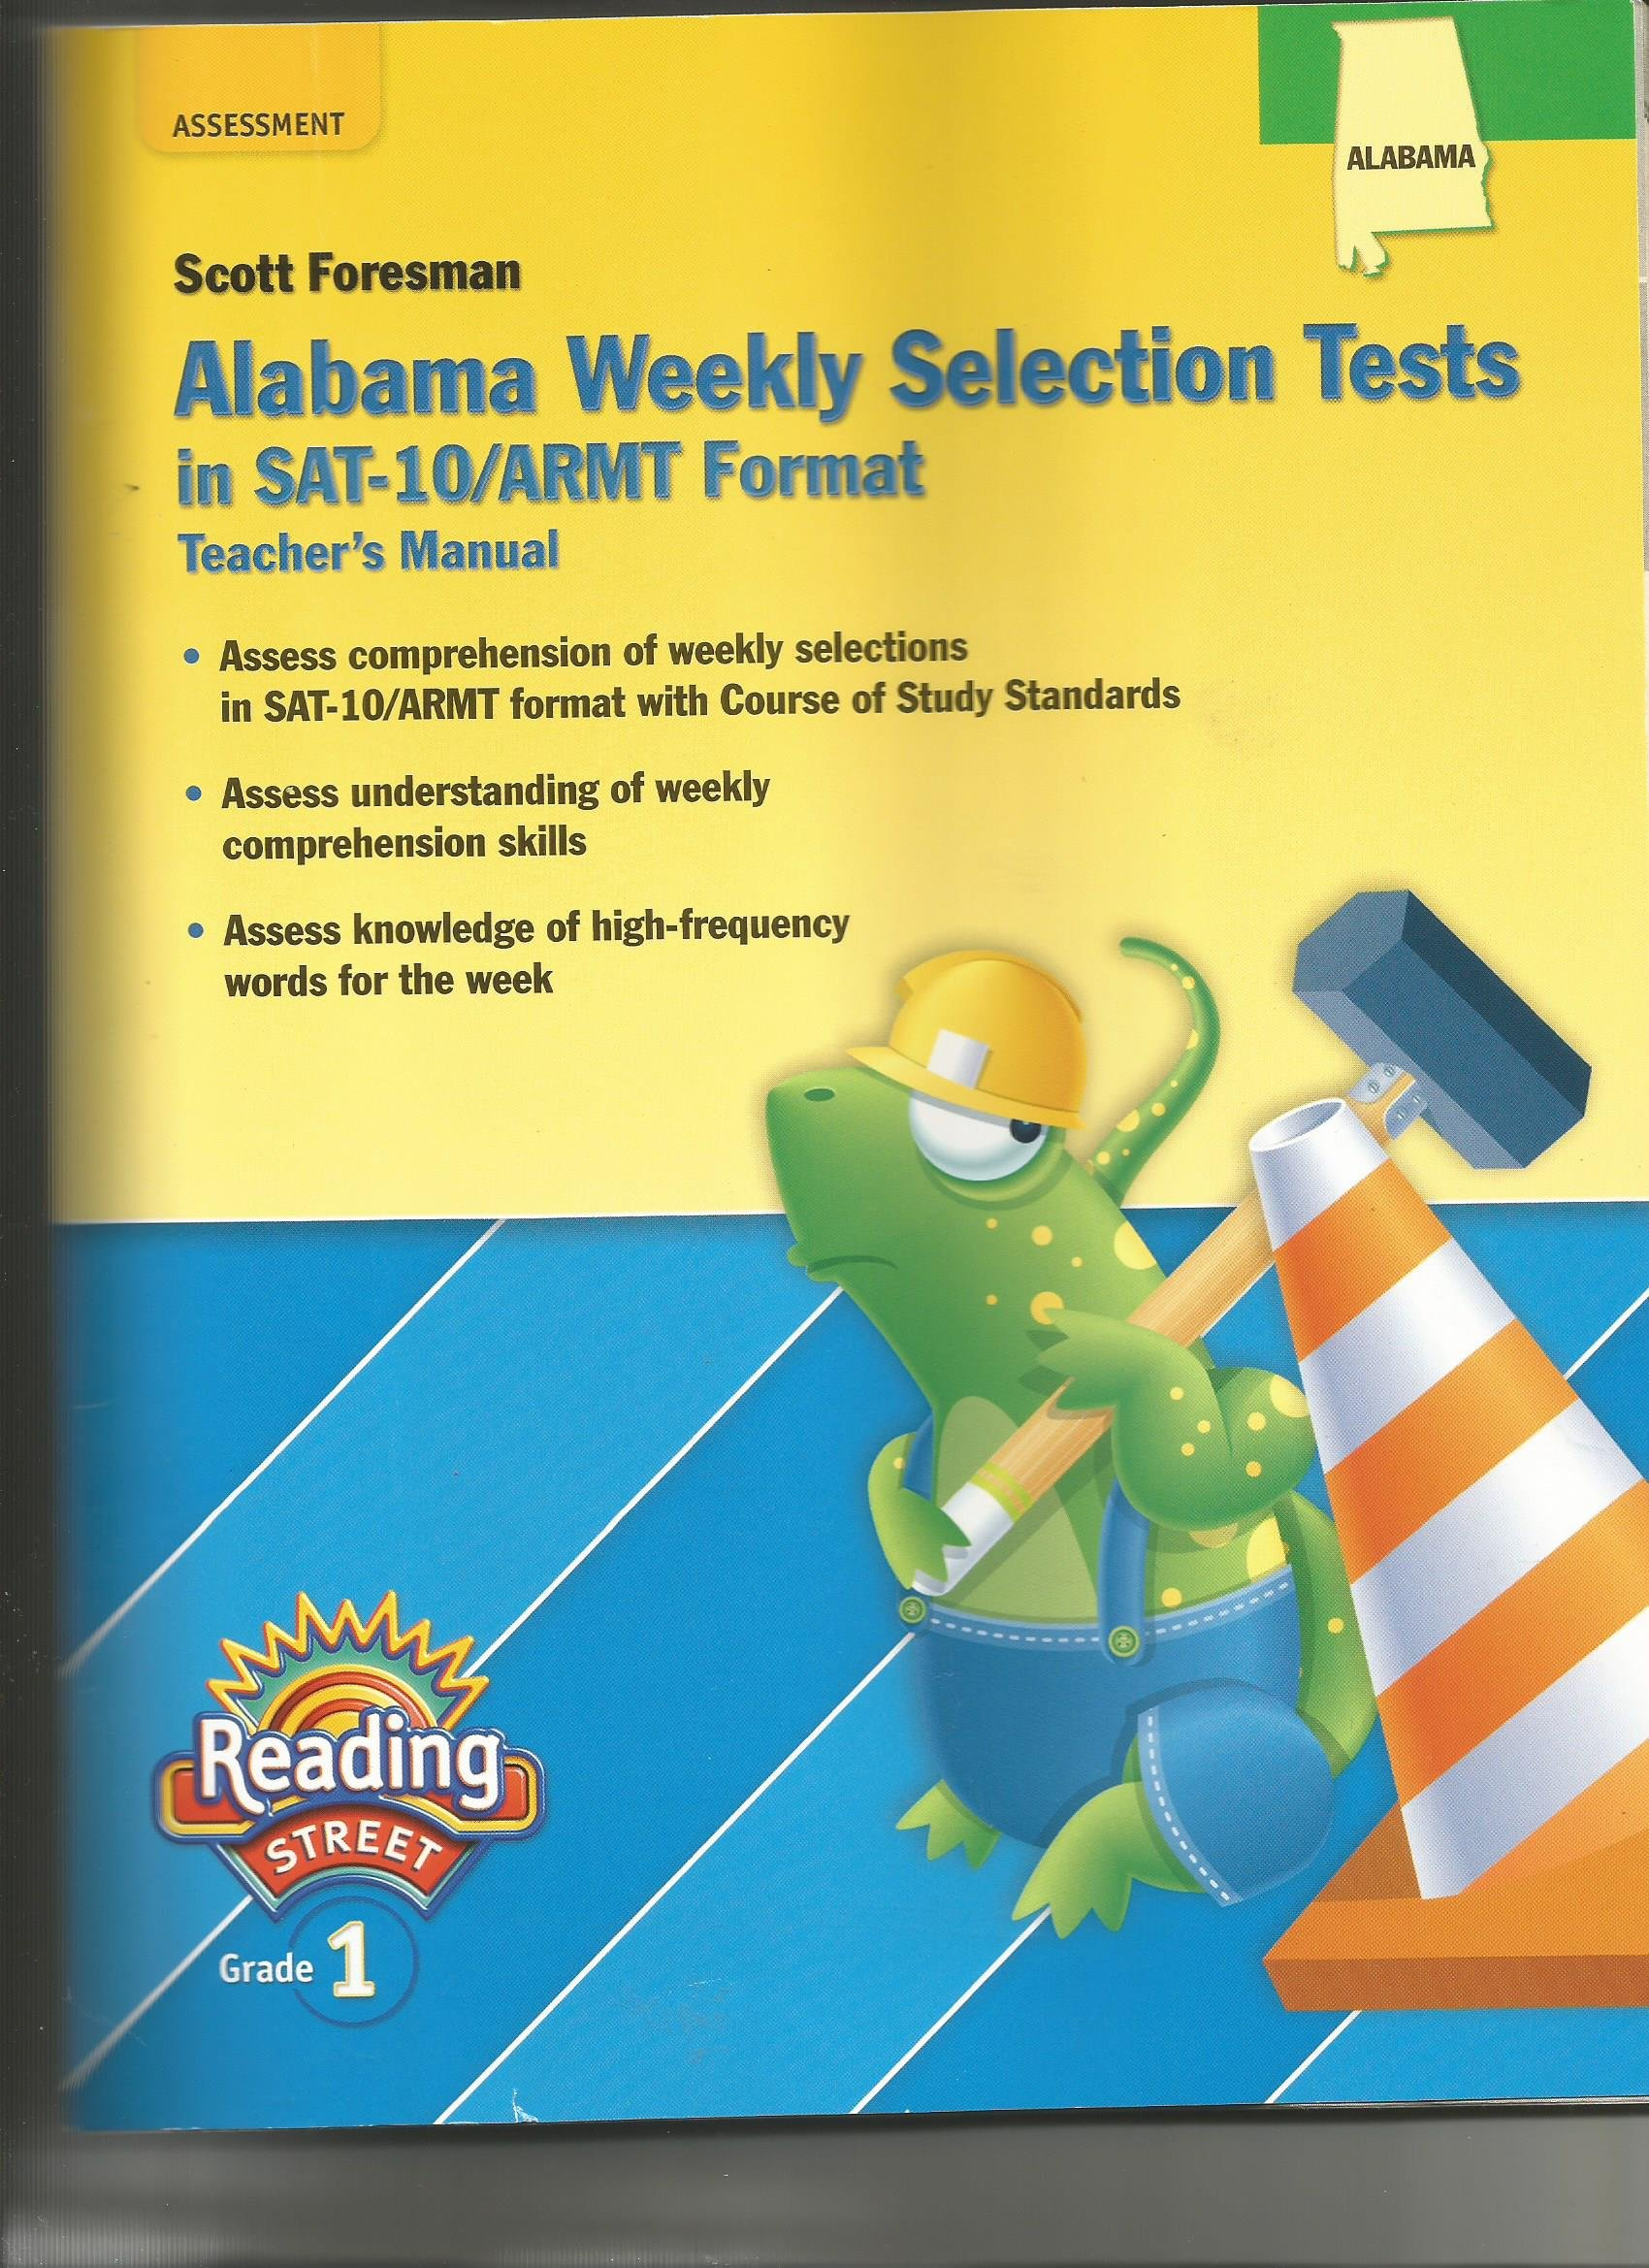 Alabama Weekly Selection Tests in SAT-10/ARMT Format Teachers Manual  Reading Street Grade 1 (Assessment): Scott Foresman: 9780328357772:  Amazon.com: Books